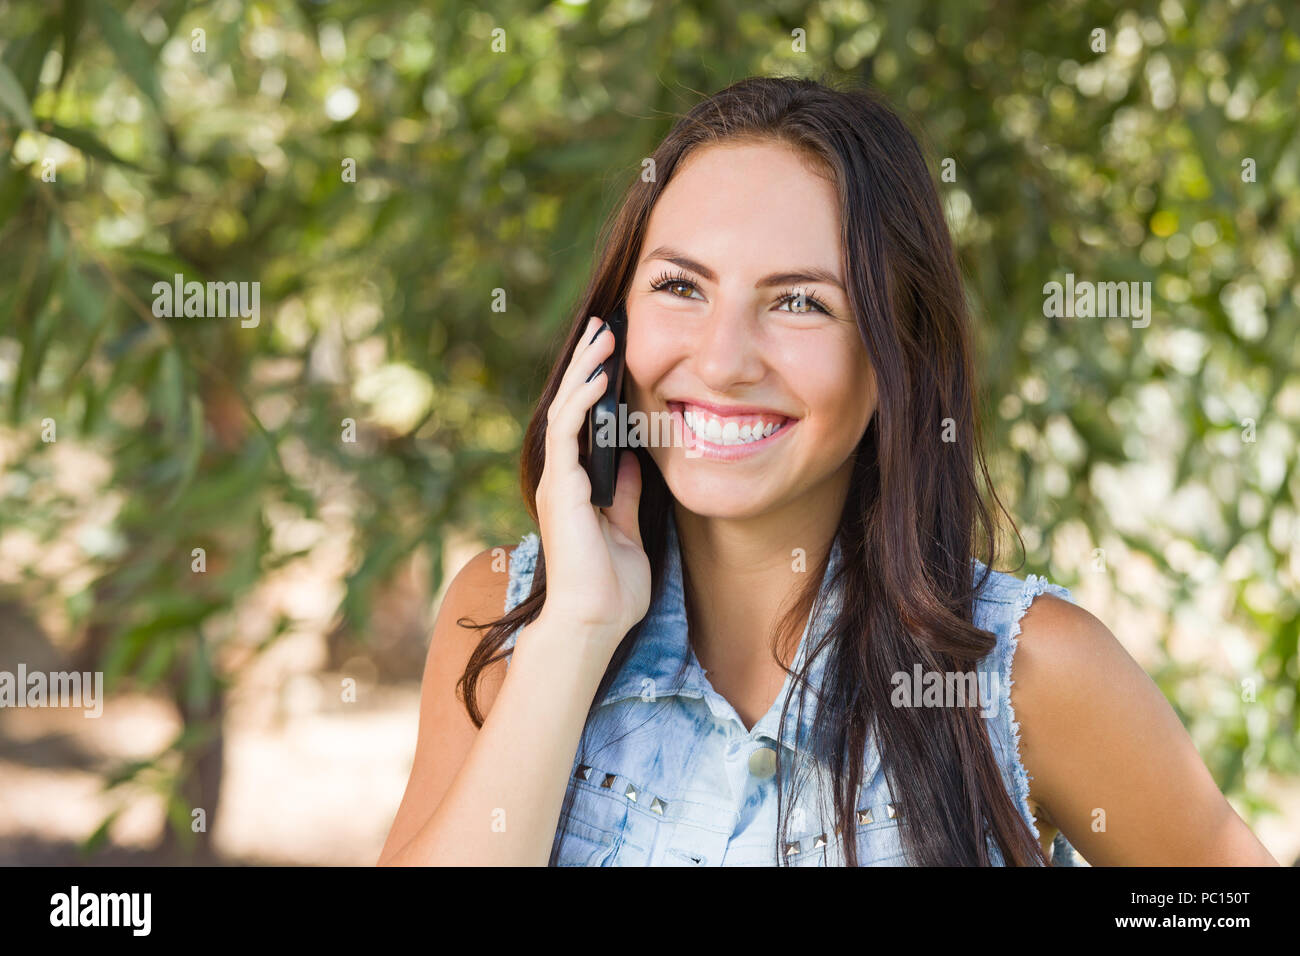 Attractive Happy Mixed Race Young Female Talking On Cell Phone Outside Stock Image